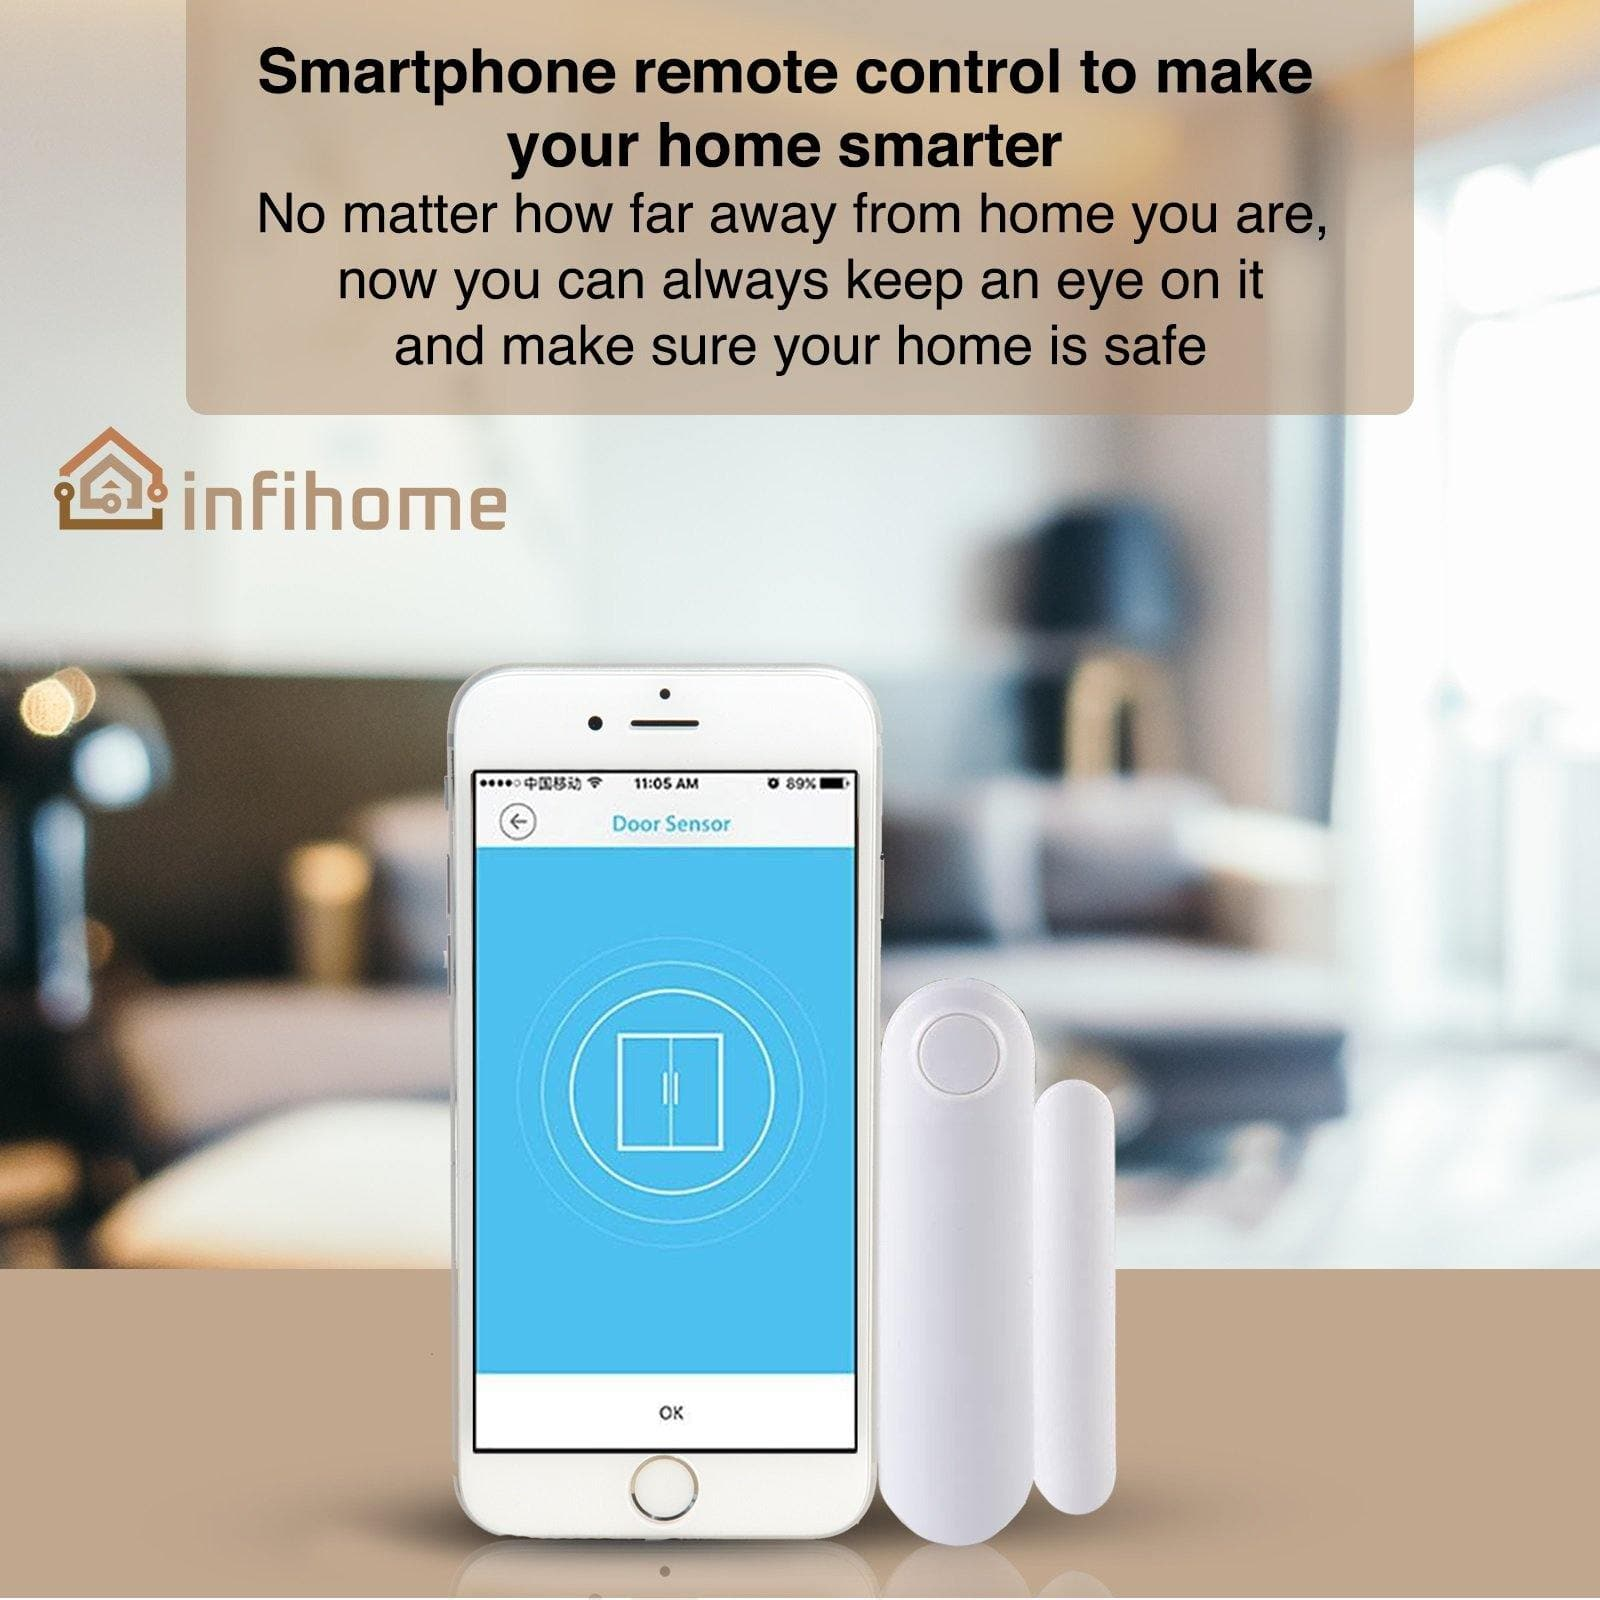 WiFi Smart Door, Smart Window Sensor - InfiHome